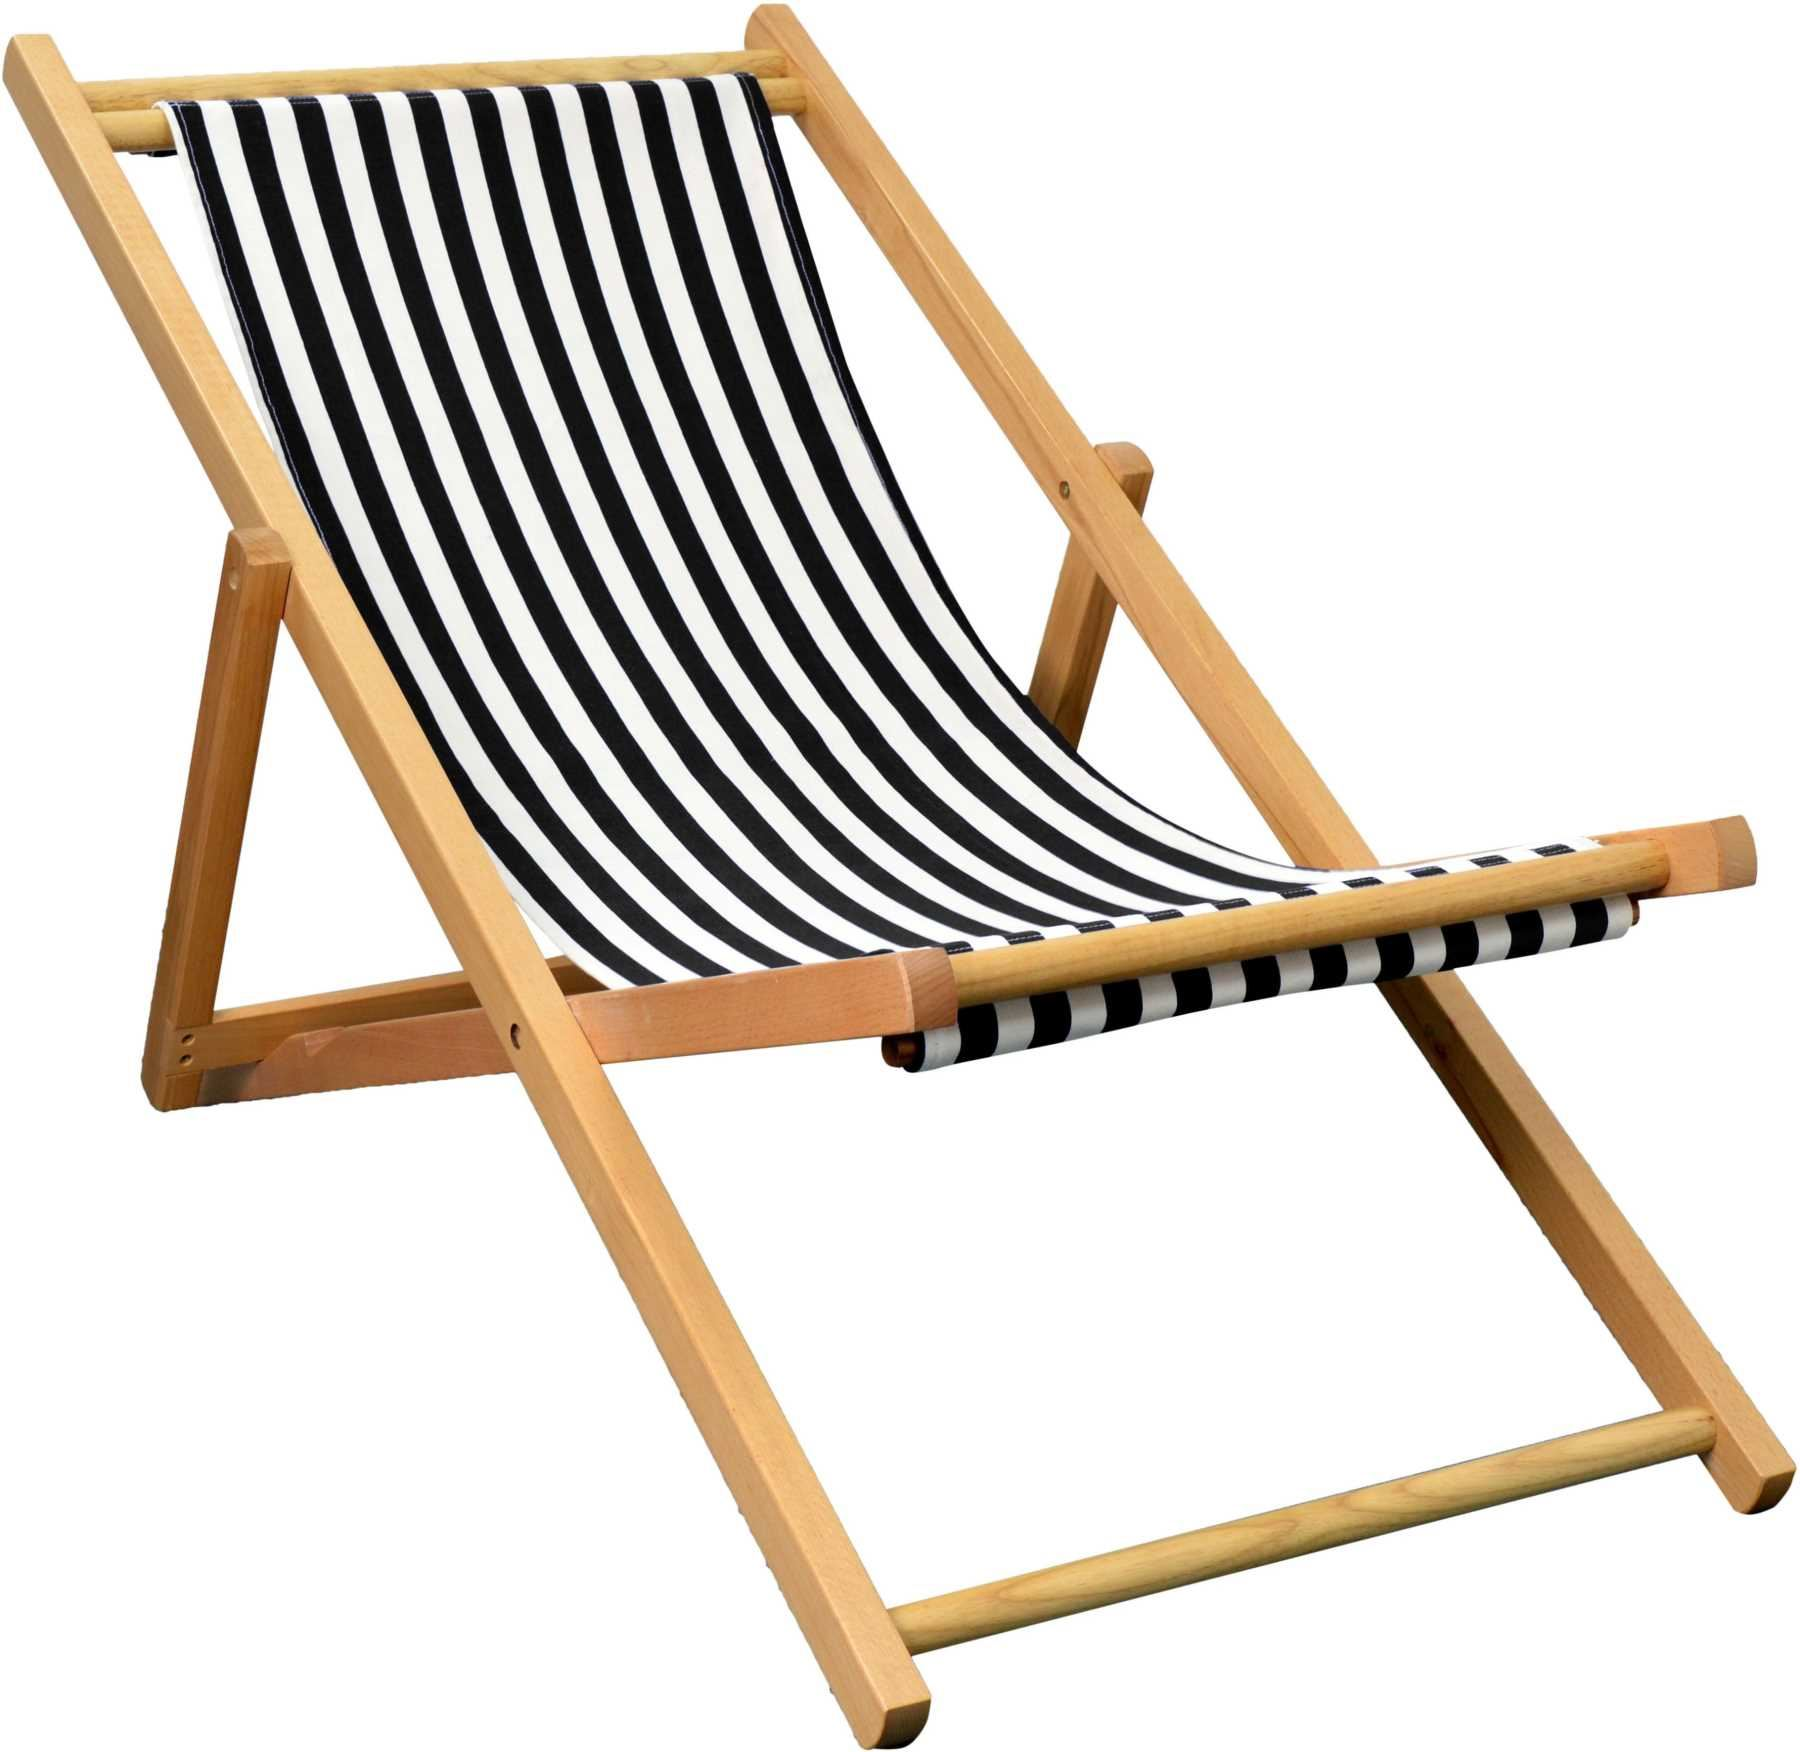 Folding Wood Beach Chair Folding Wooden Deckchair Garden Beach Seaside Deck Chair